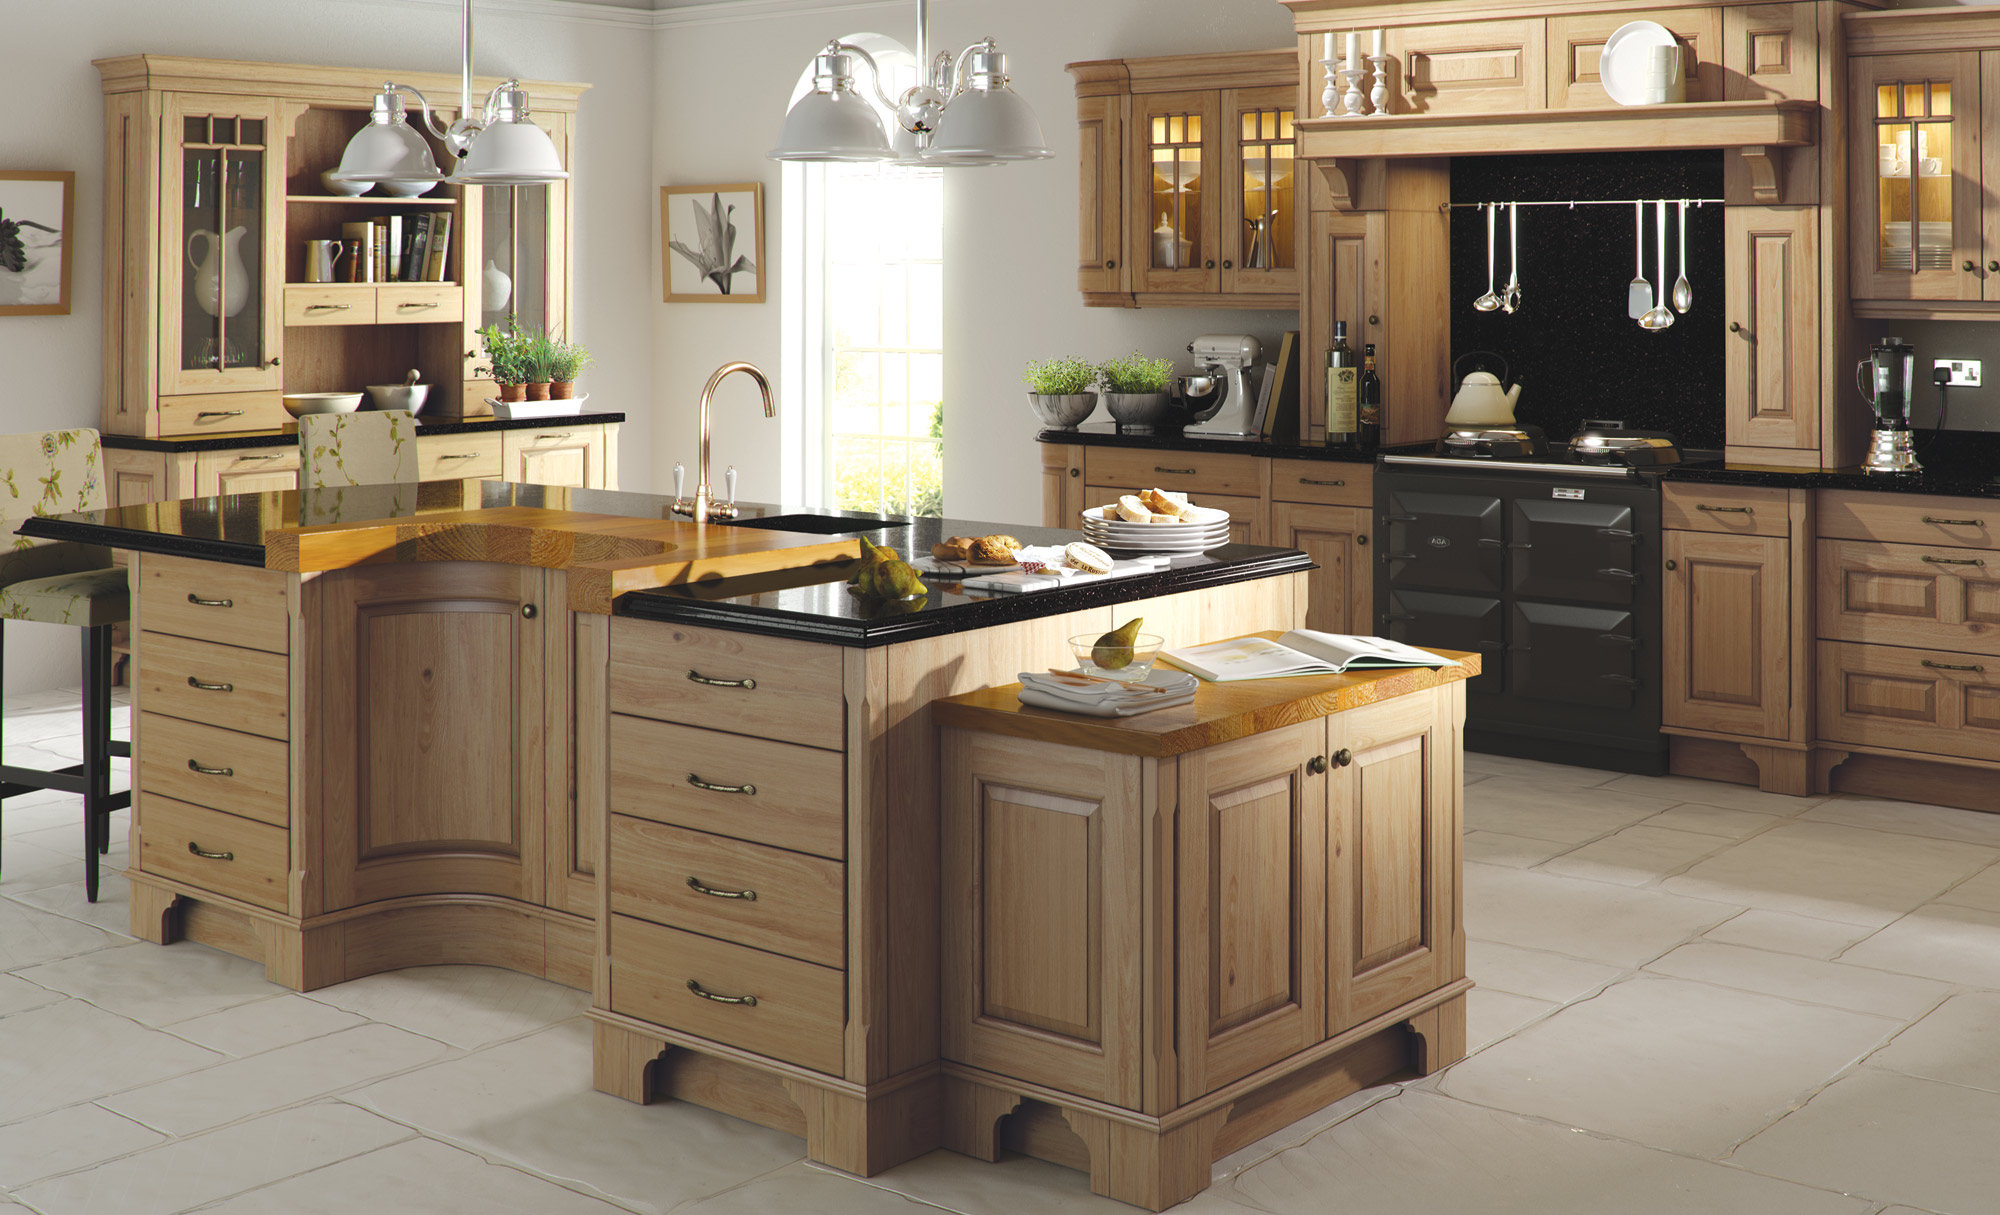 Before And After Kitchens Uk